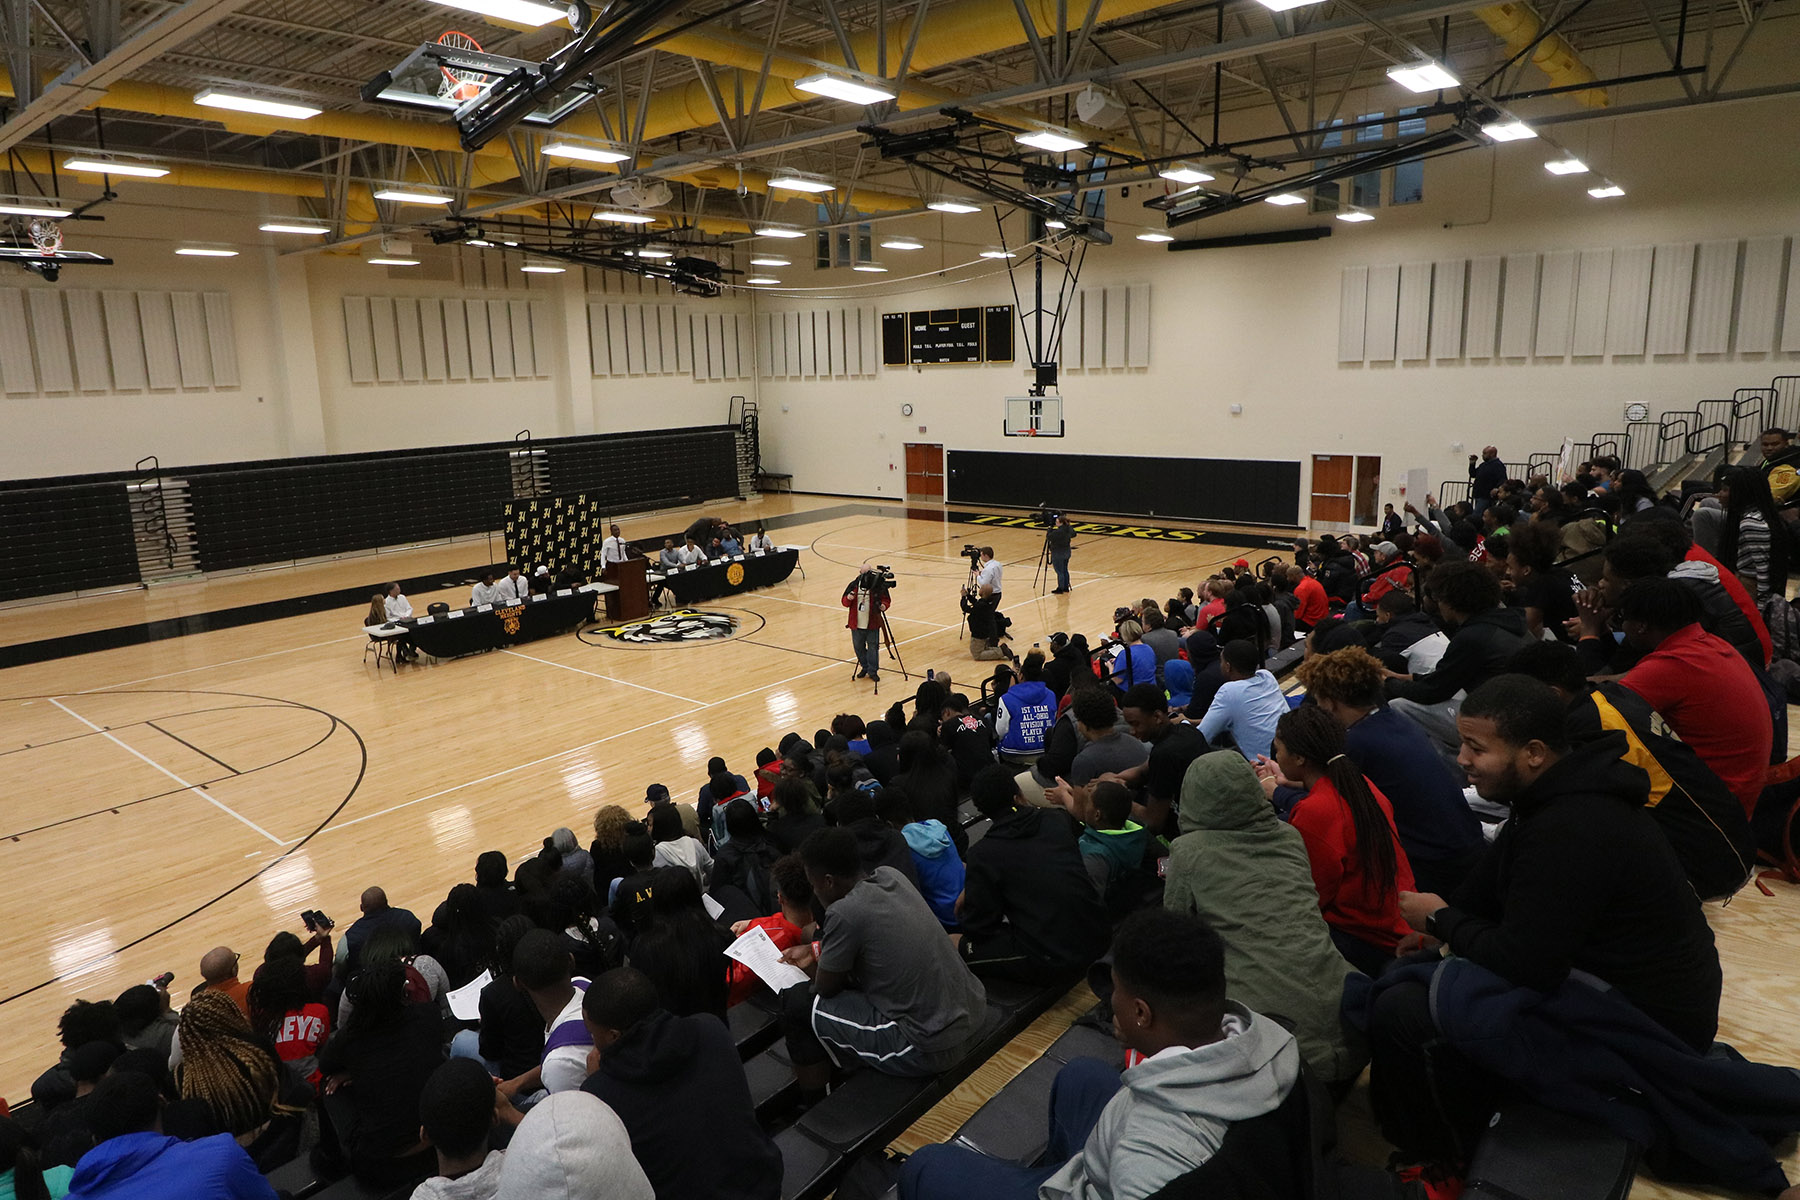 National Signing Day crowd at the CHHS Gymnasium